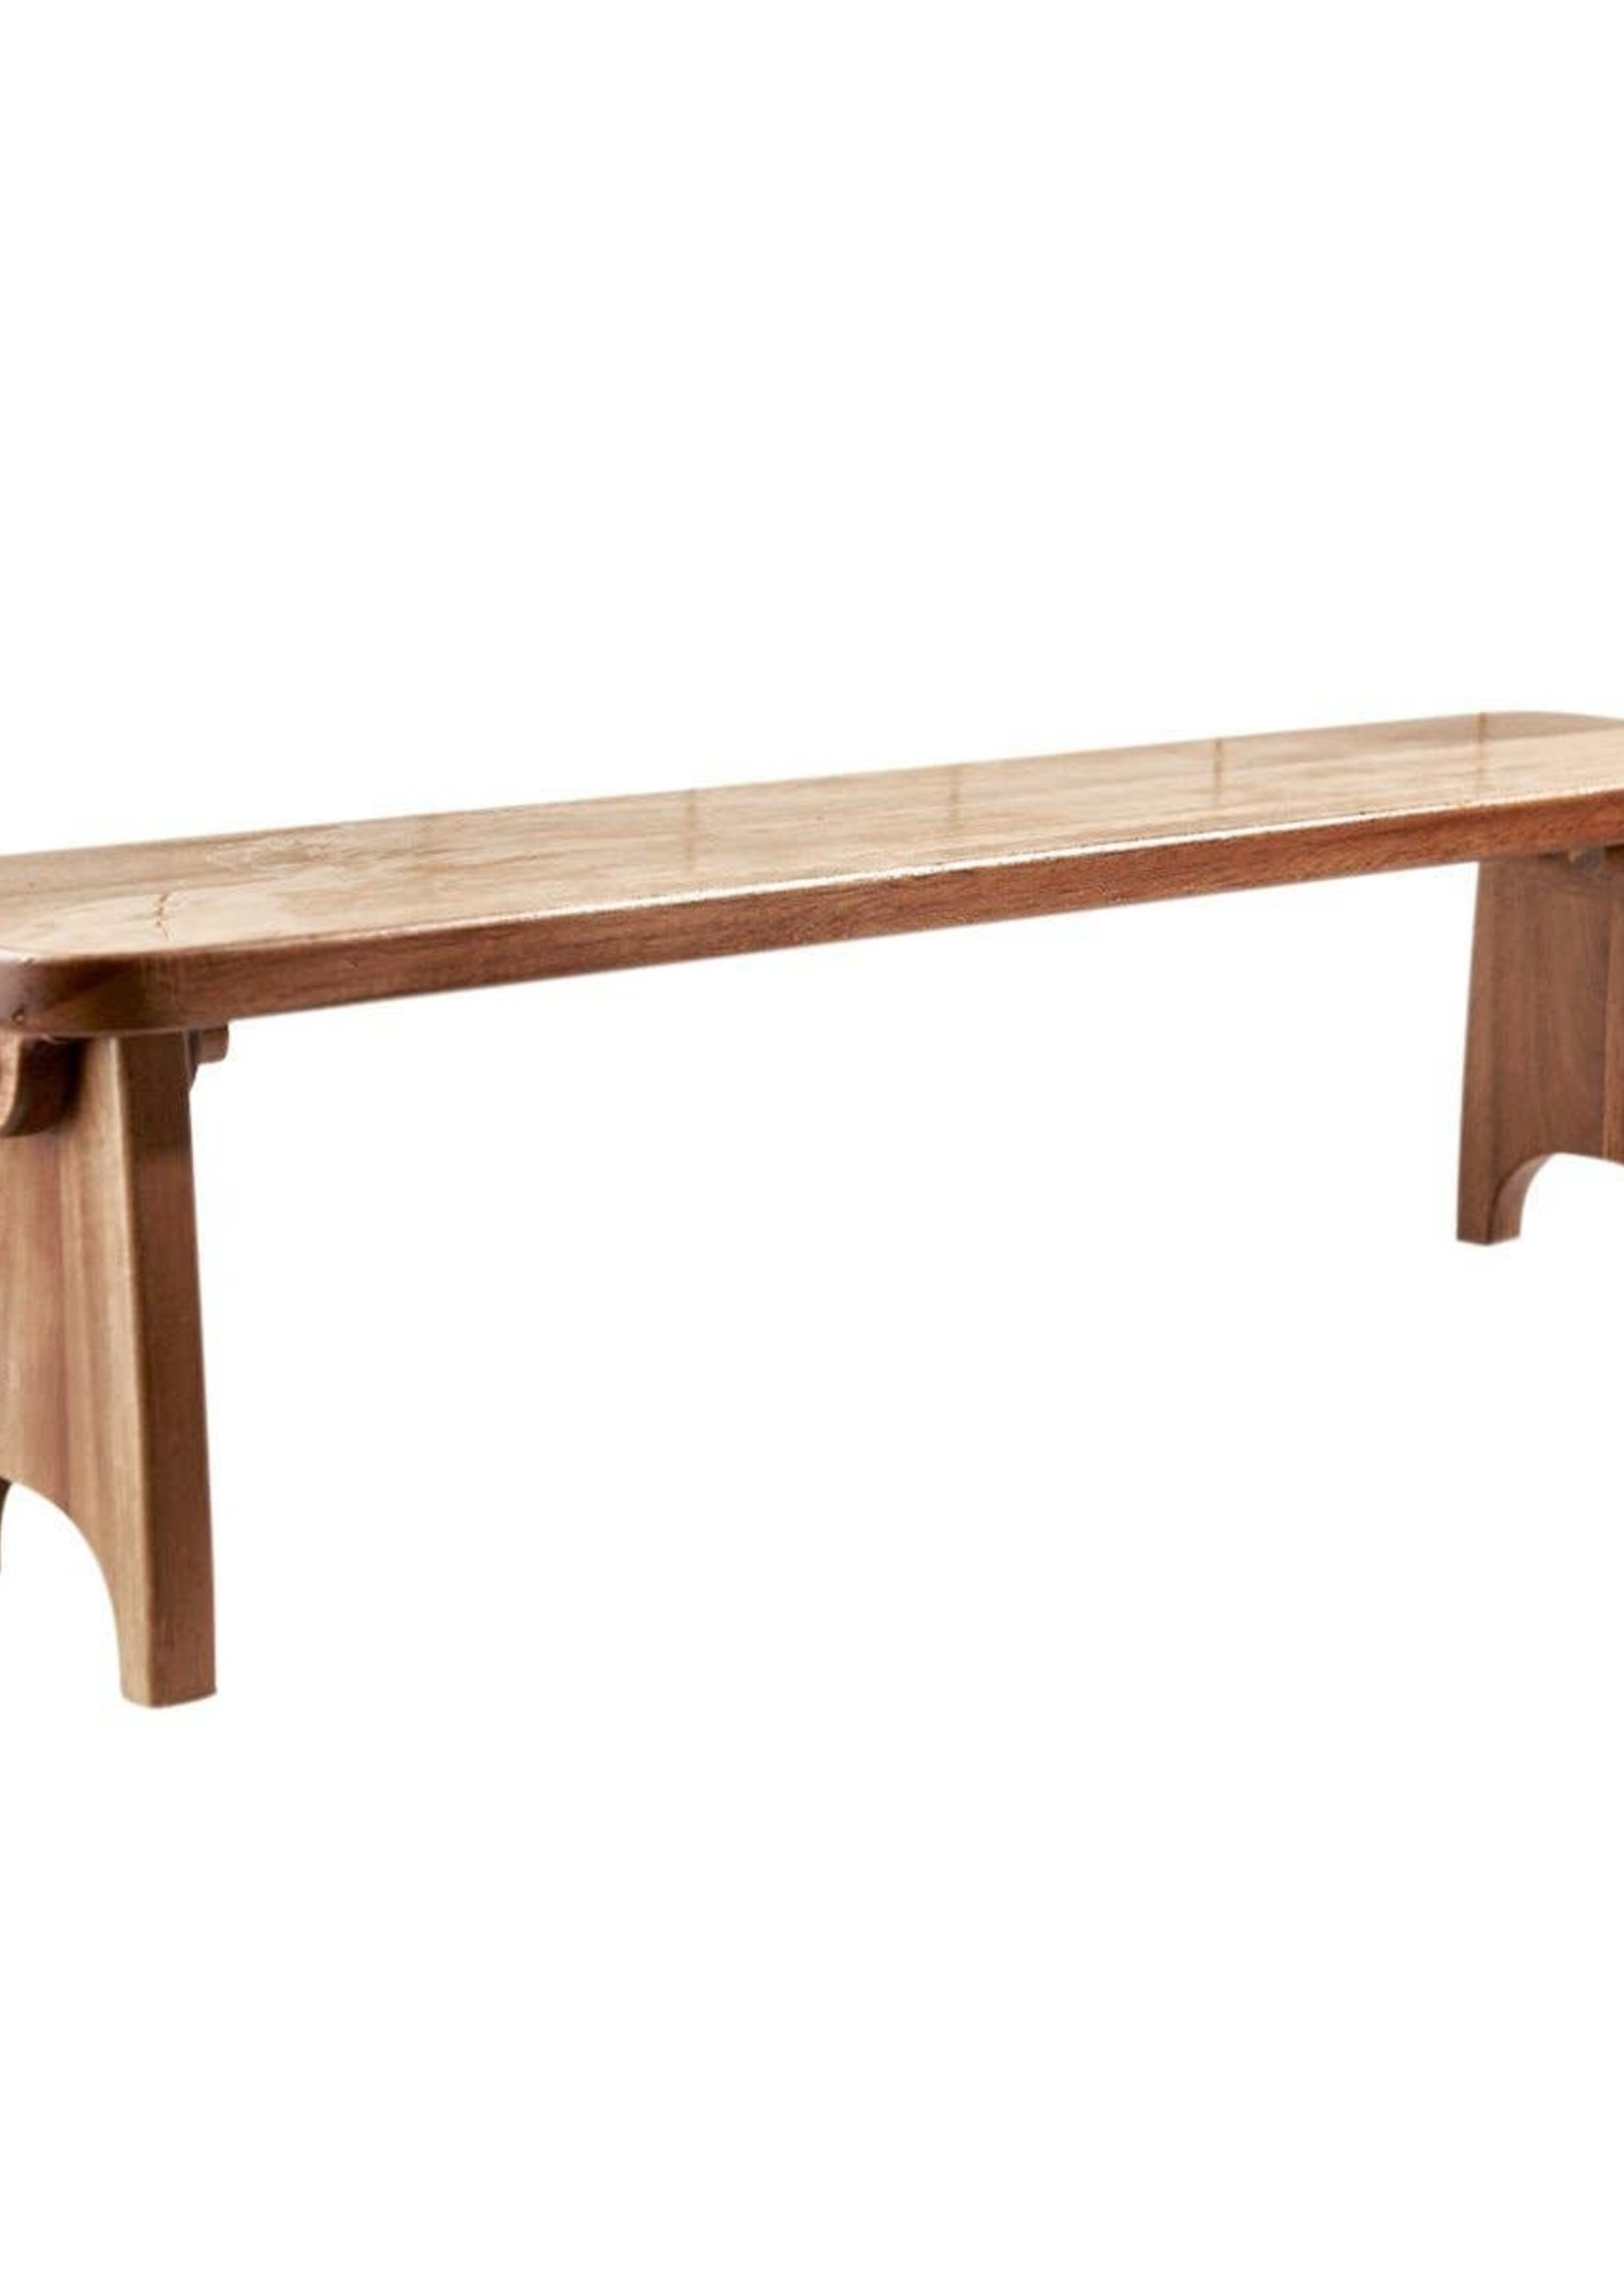 Elevated Timber Serving Board